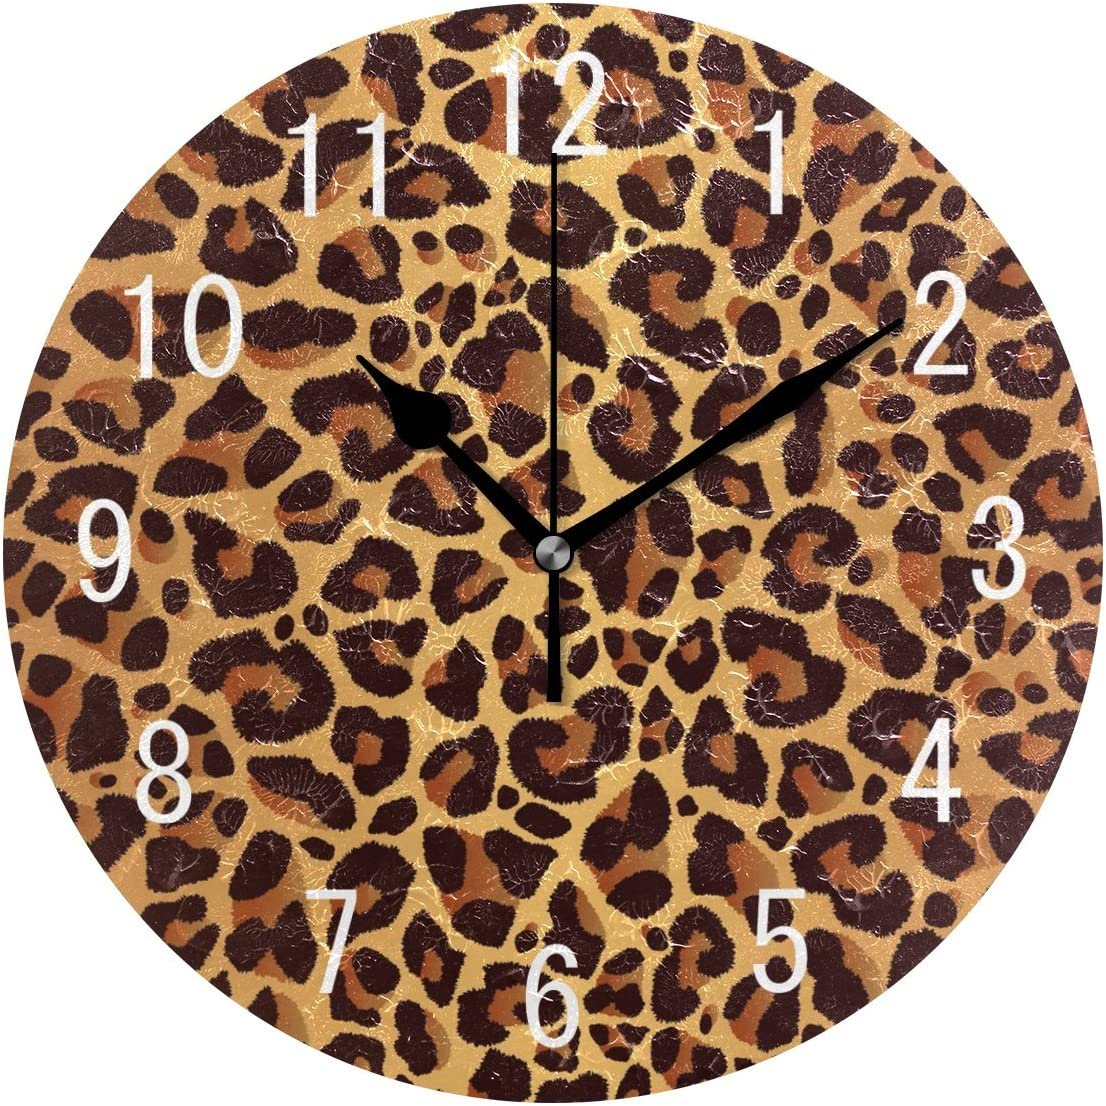 ALAZA Home Decor Bowrn Animal Leopard Print Round Acrylic 9.5 Inch Wall Clock Non Ticking Silent Clock Art for Living Room Kitchen Bedroom